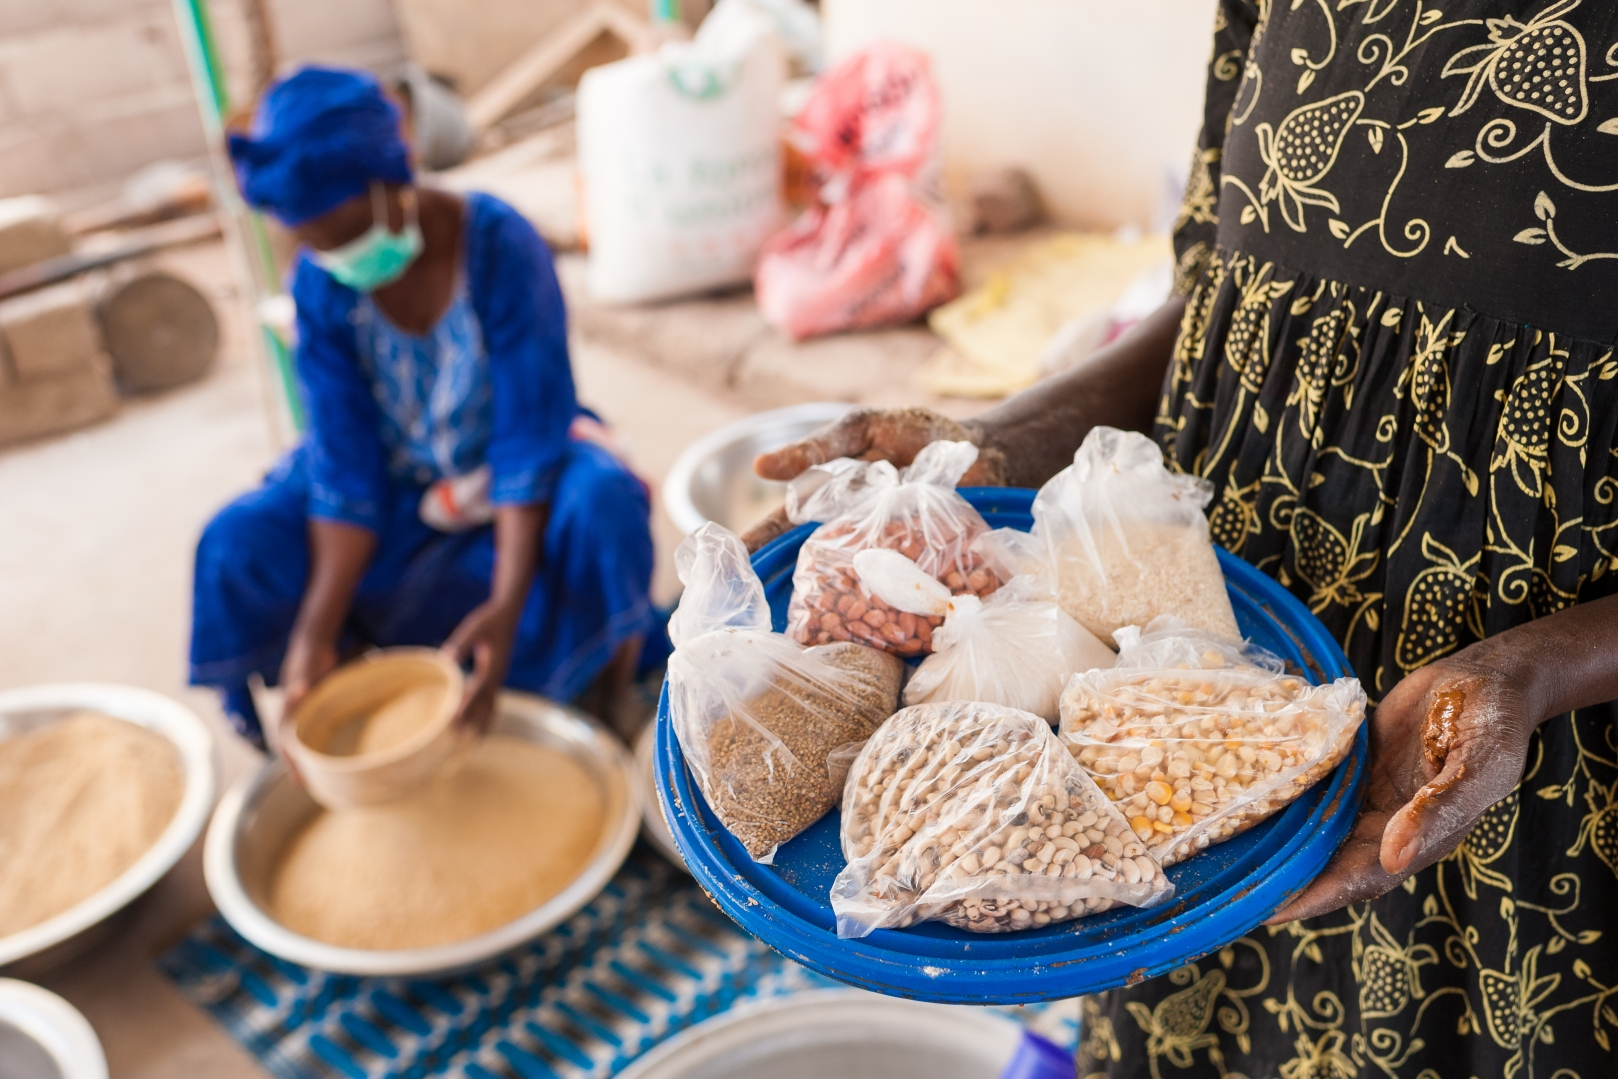 In the foreground, a woman holds a tray the ingredients used to make a nutrient-rich flour blend that is being sifted by the women in the background